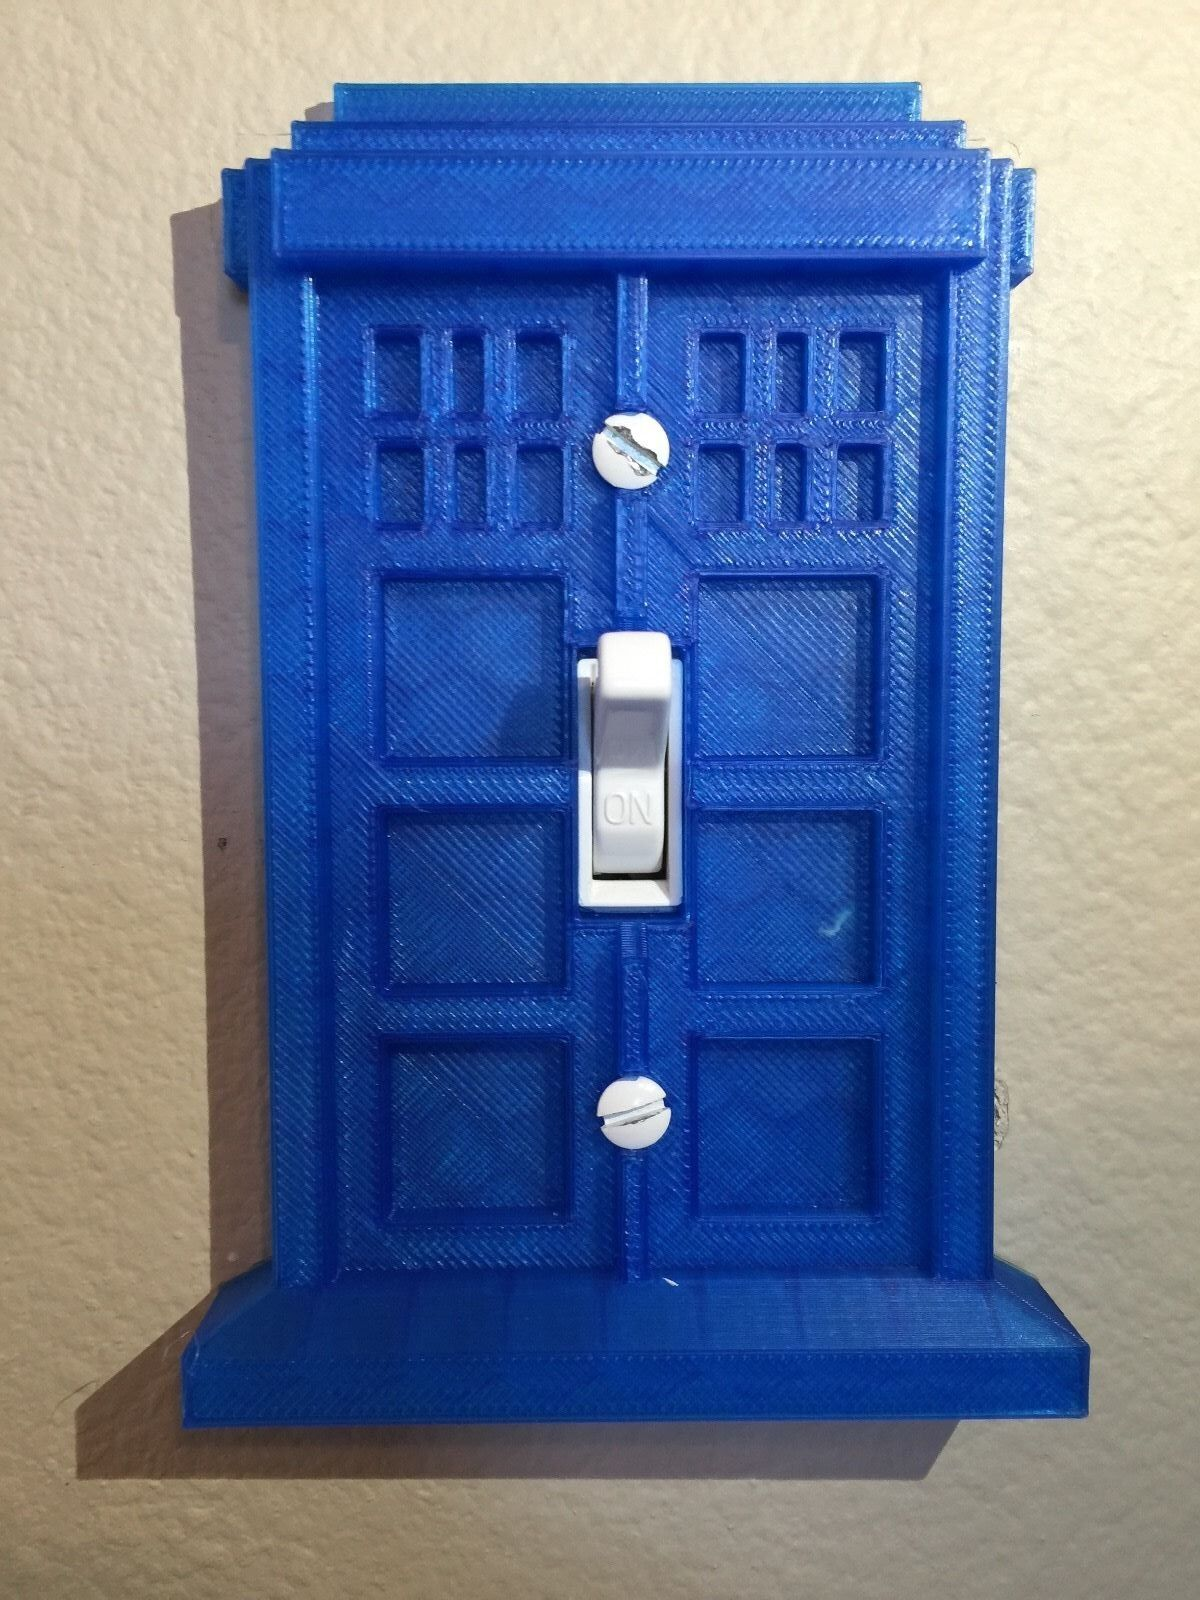 Tardis doctor who light switch cover plate picclick for Tardis light switch cover